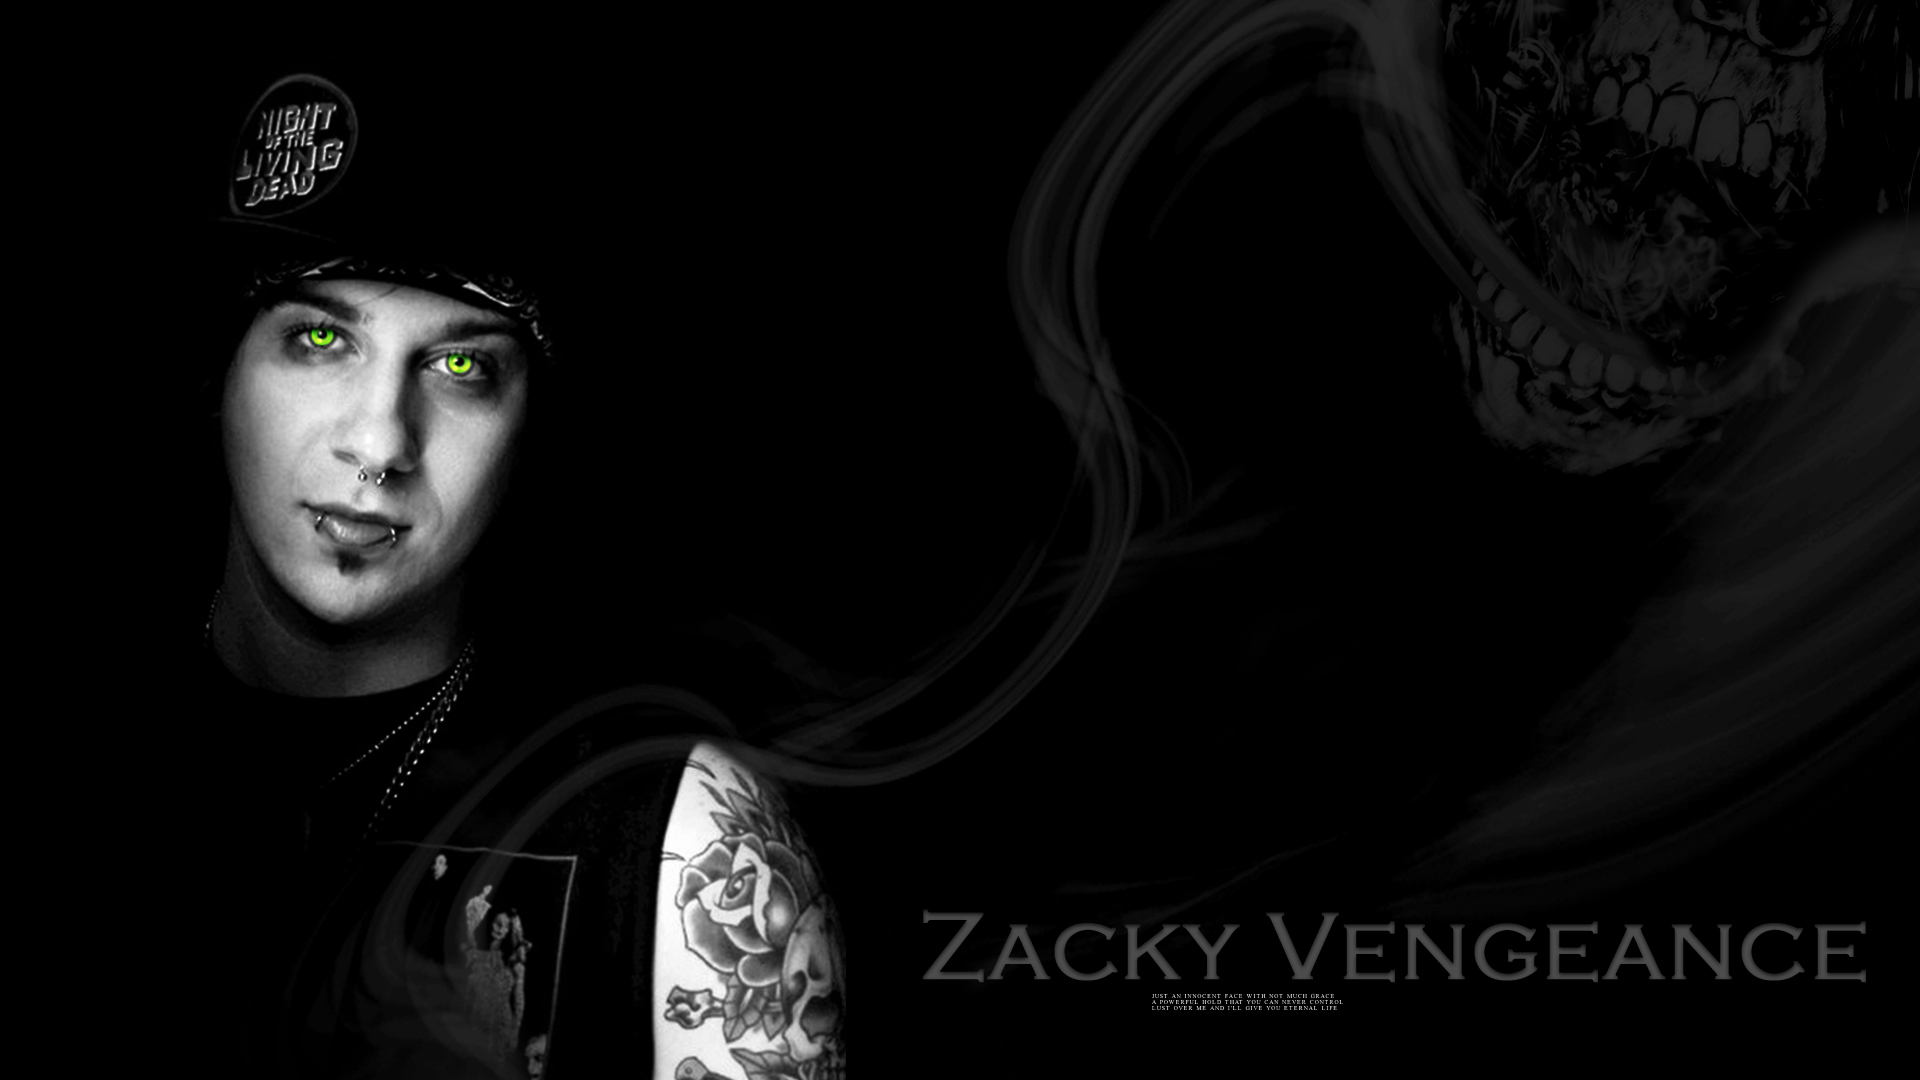 Zacky Vengeance Full HD Wallpaper And Background Image